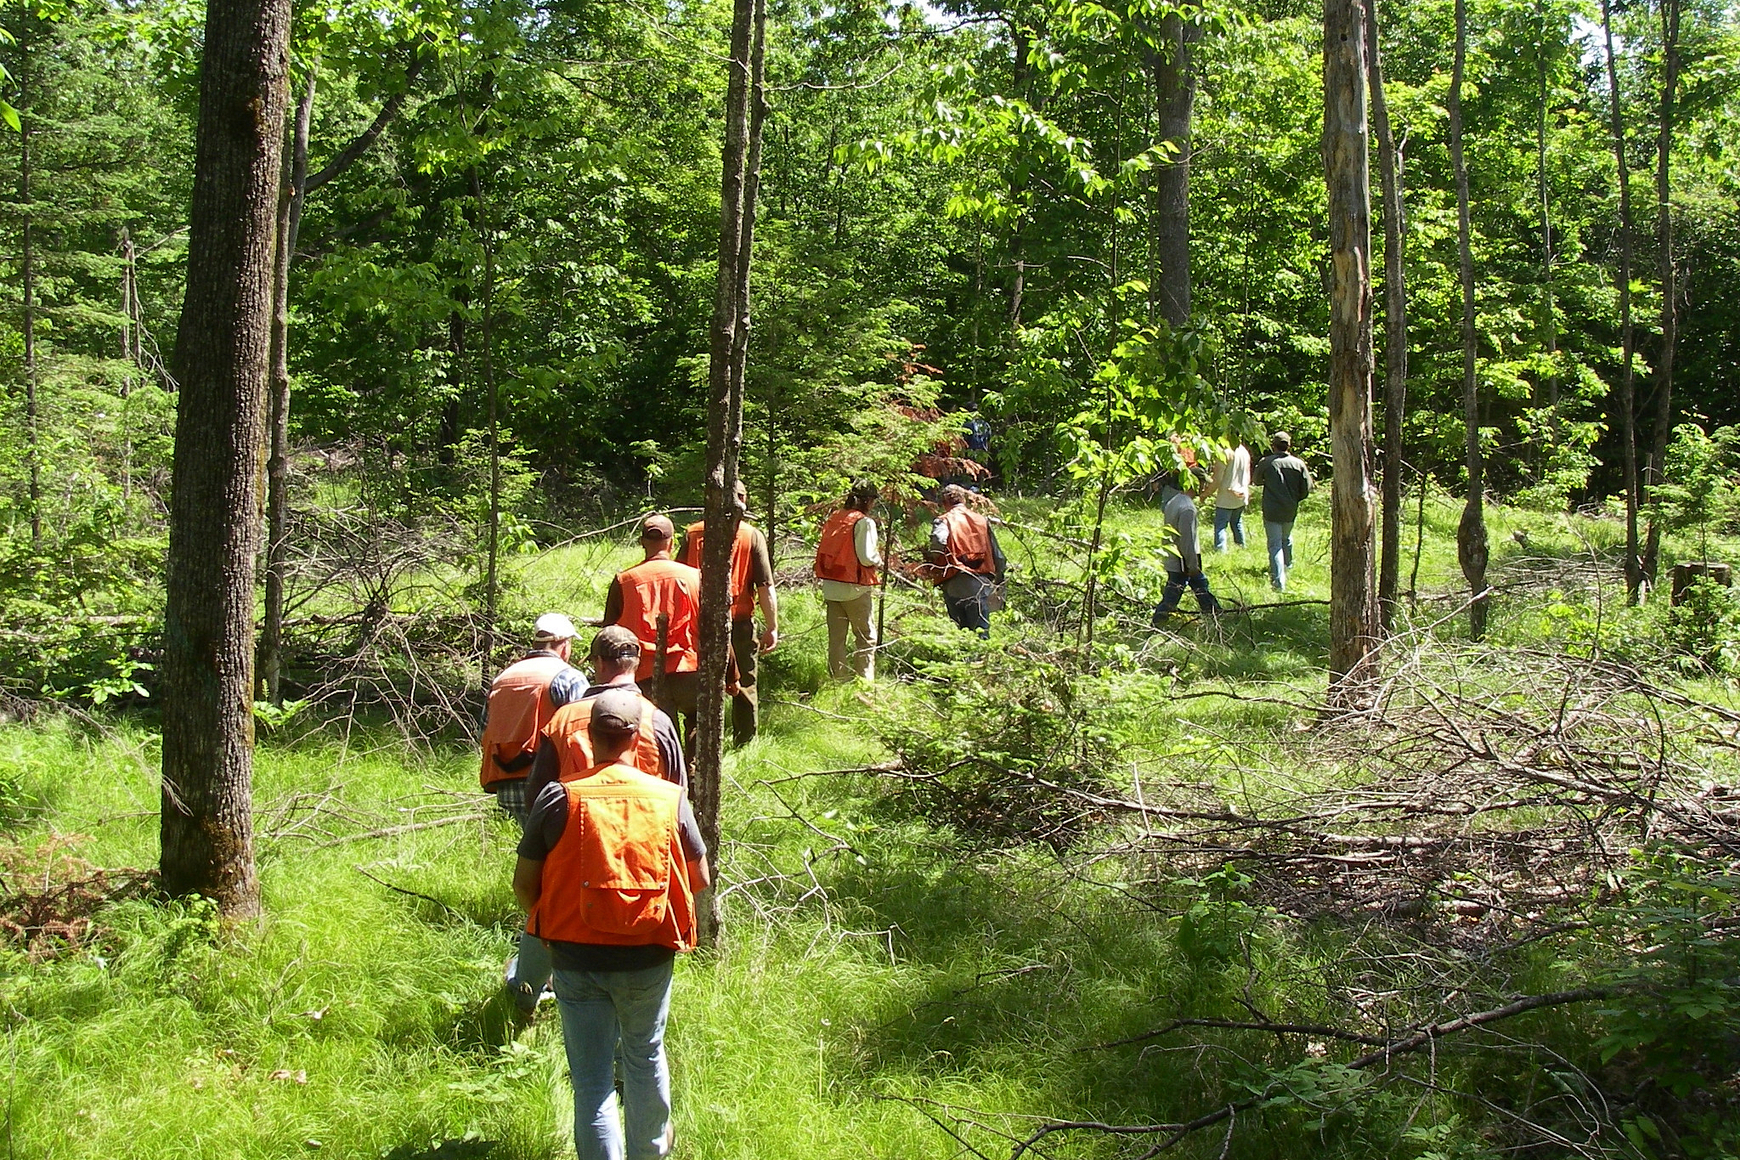 Group of people in orange vest walking in a line through the woods